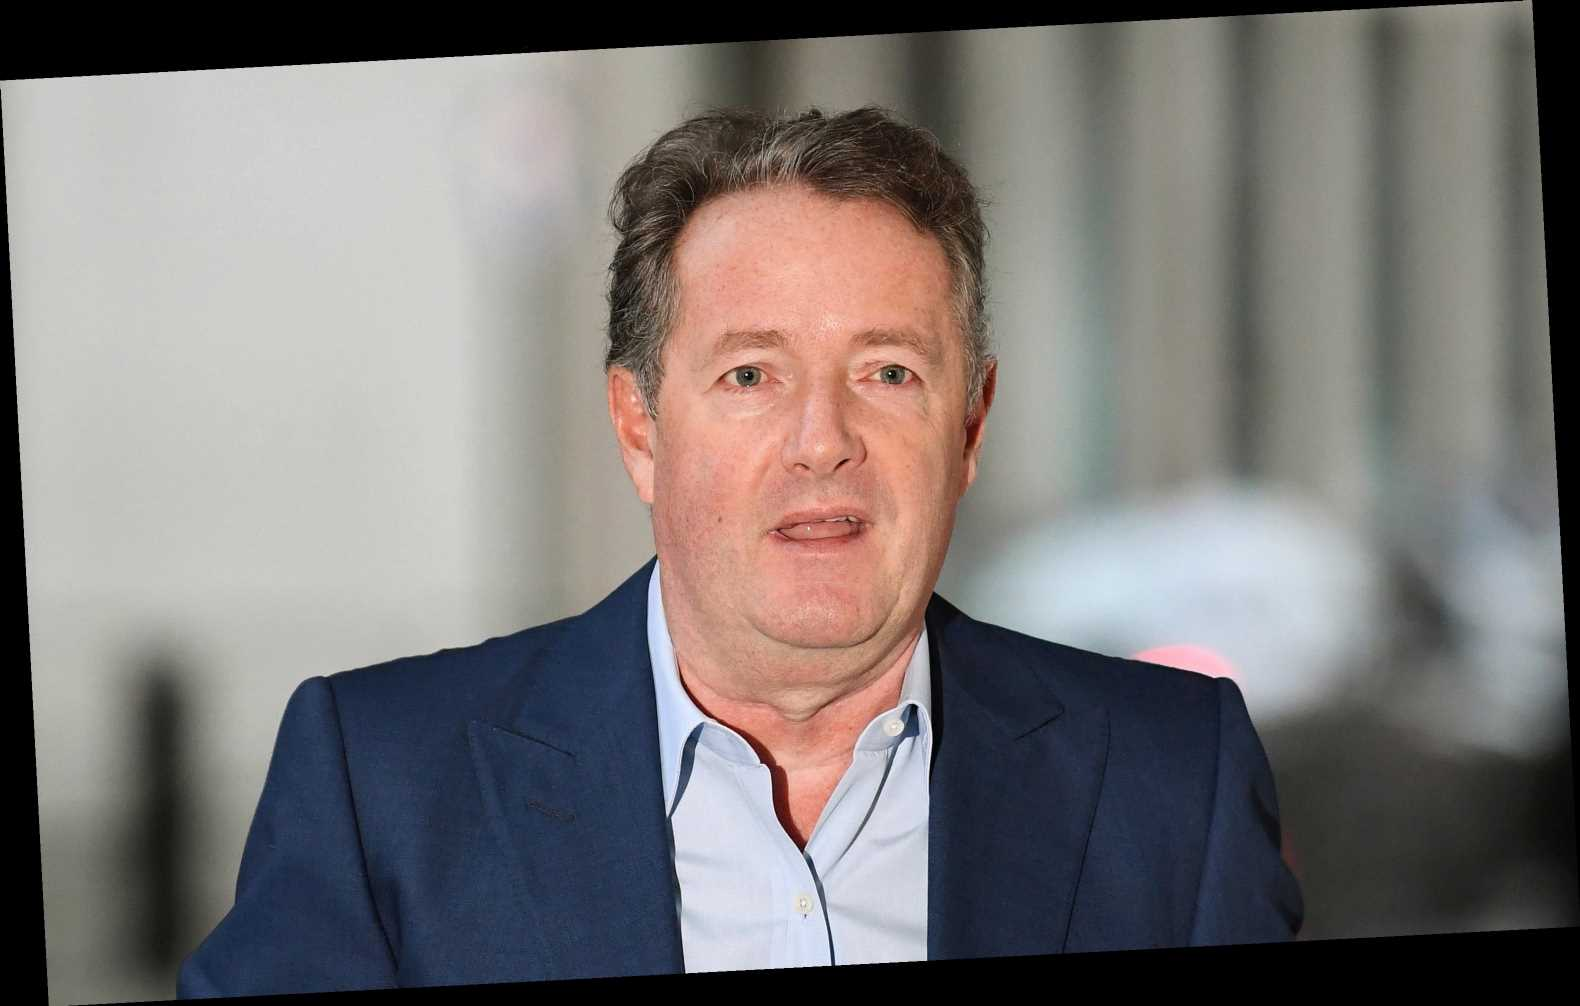 Over 36k fans sign petition for Piers Morgan to return to GMB for his 'common sense'